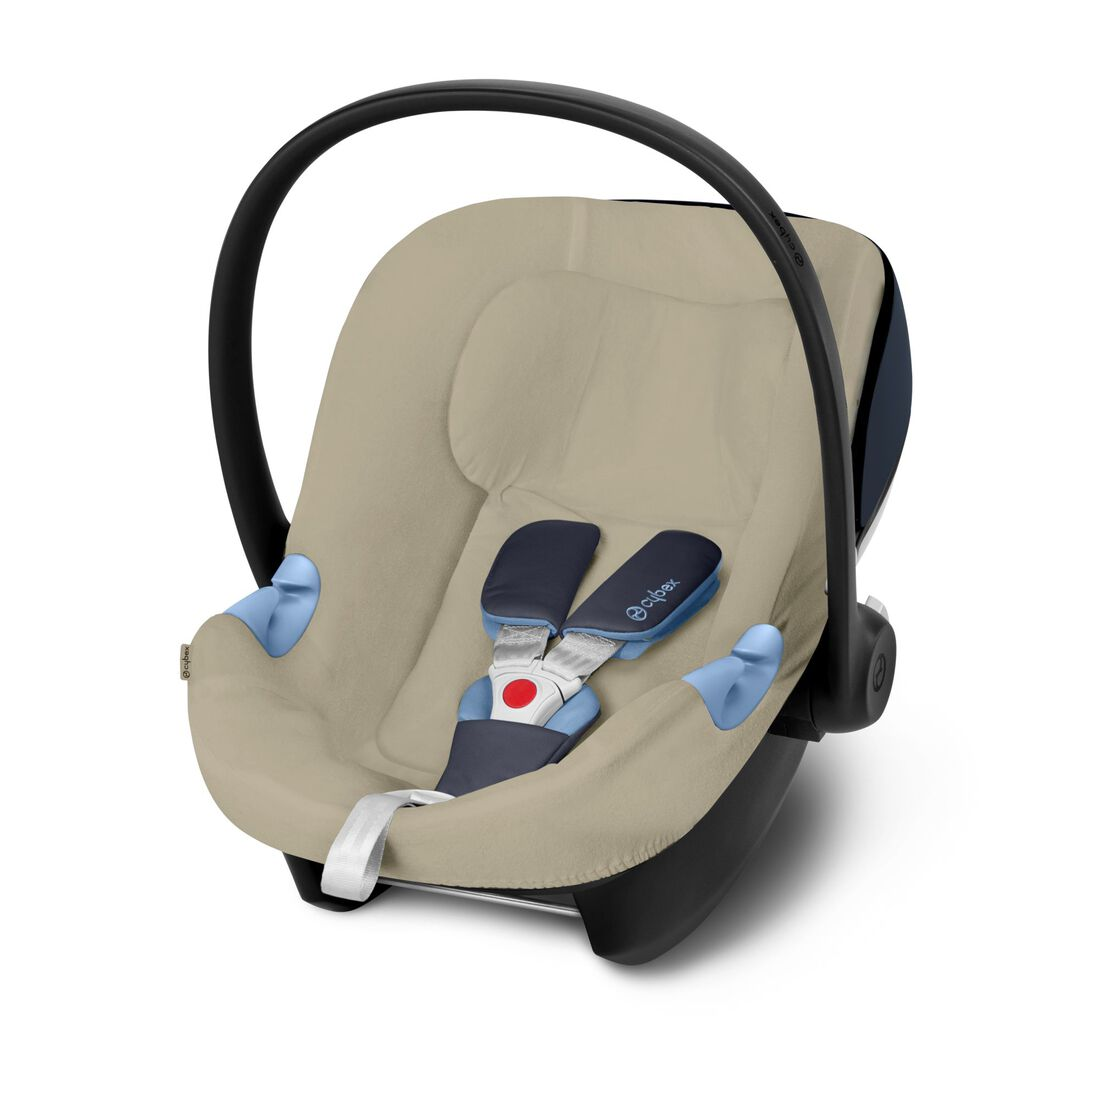 CYBEX Summer Cover Aton M/B - Beige in Beige large image number 1